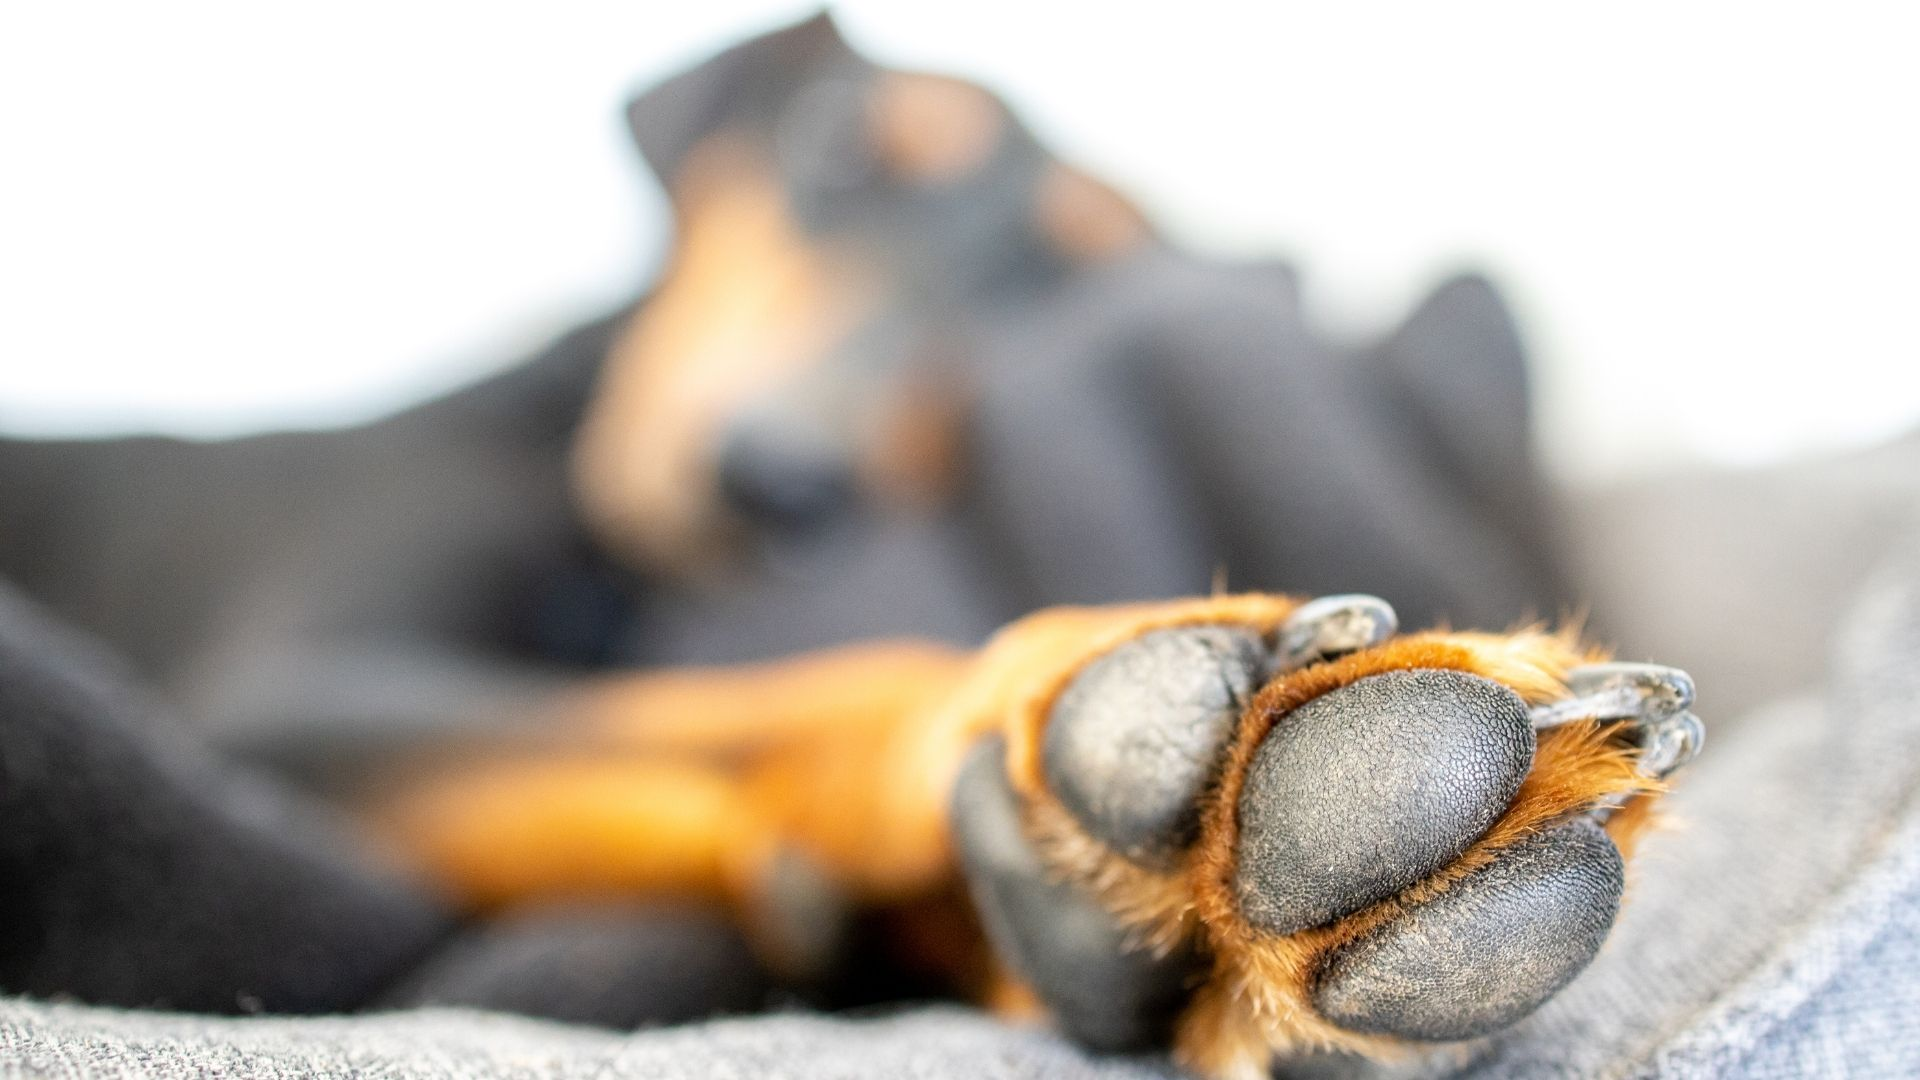 The best way to prevent blisters on dog paws are to keep your dog's pads moisturized, keep the dog from walking on hot roads, and...